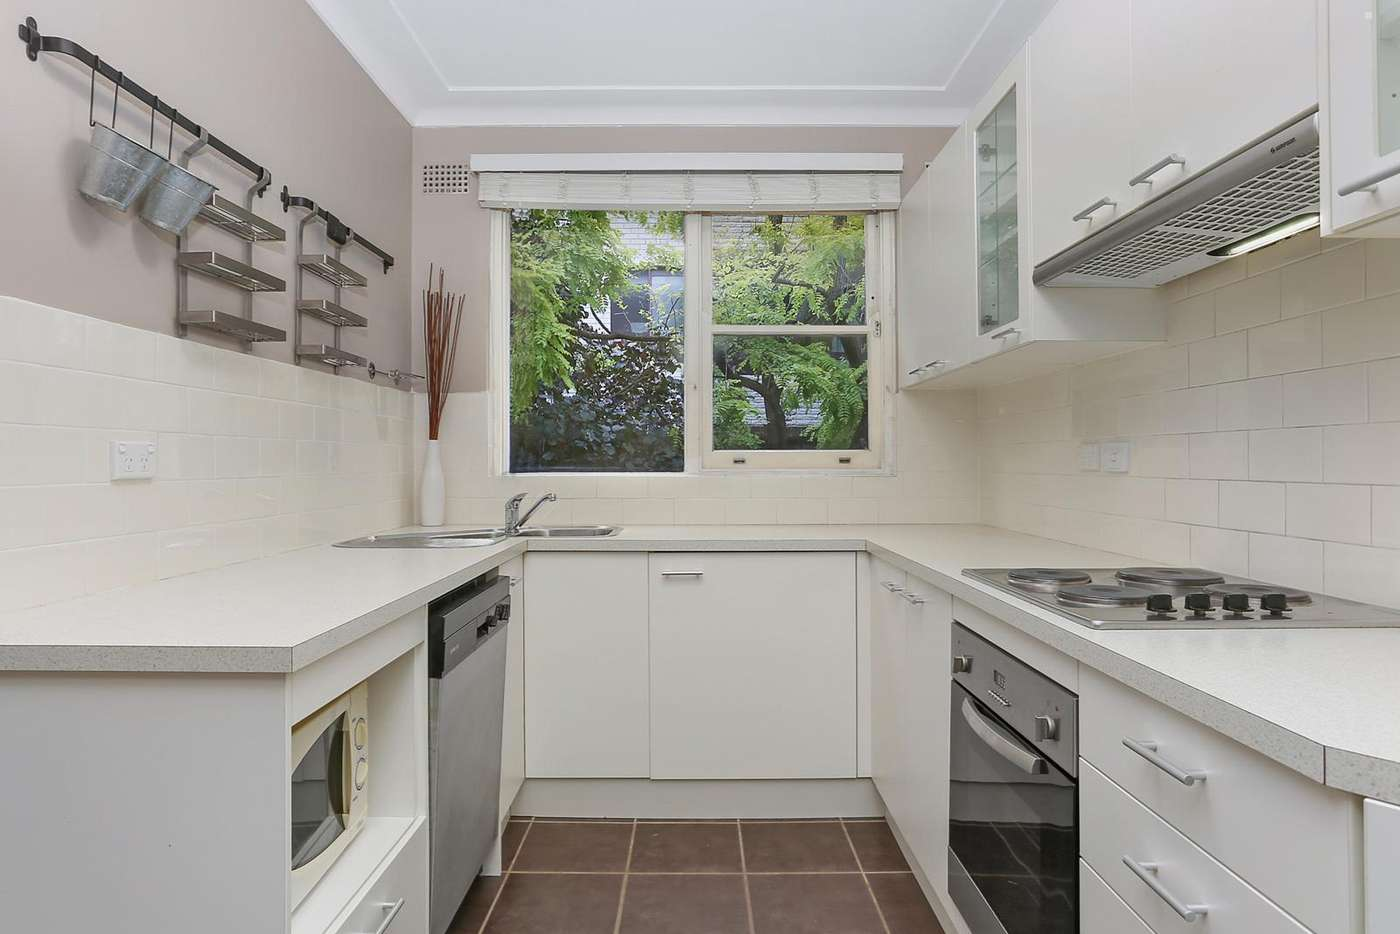 Main view of Homely apartment listing, 13/18 Tranmere Street, Drummoyne NSW 2047